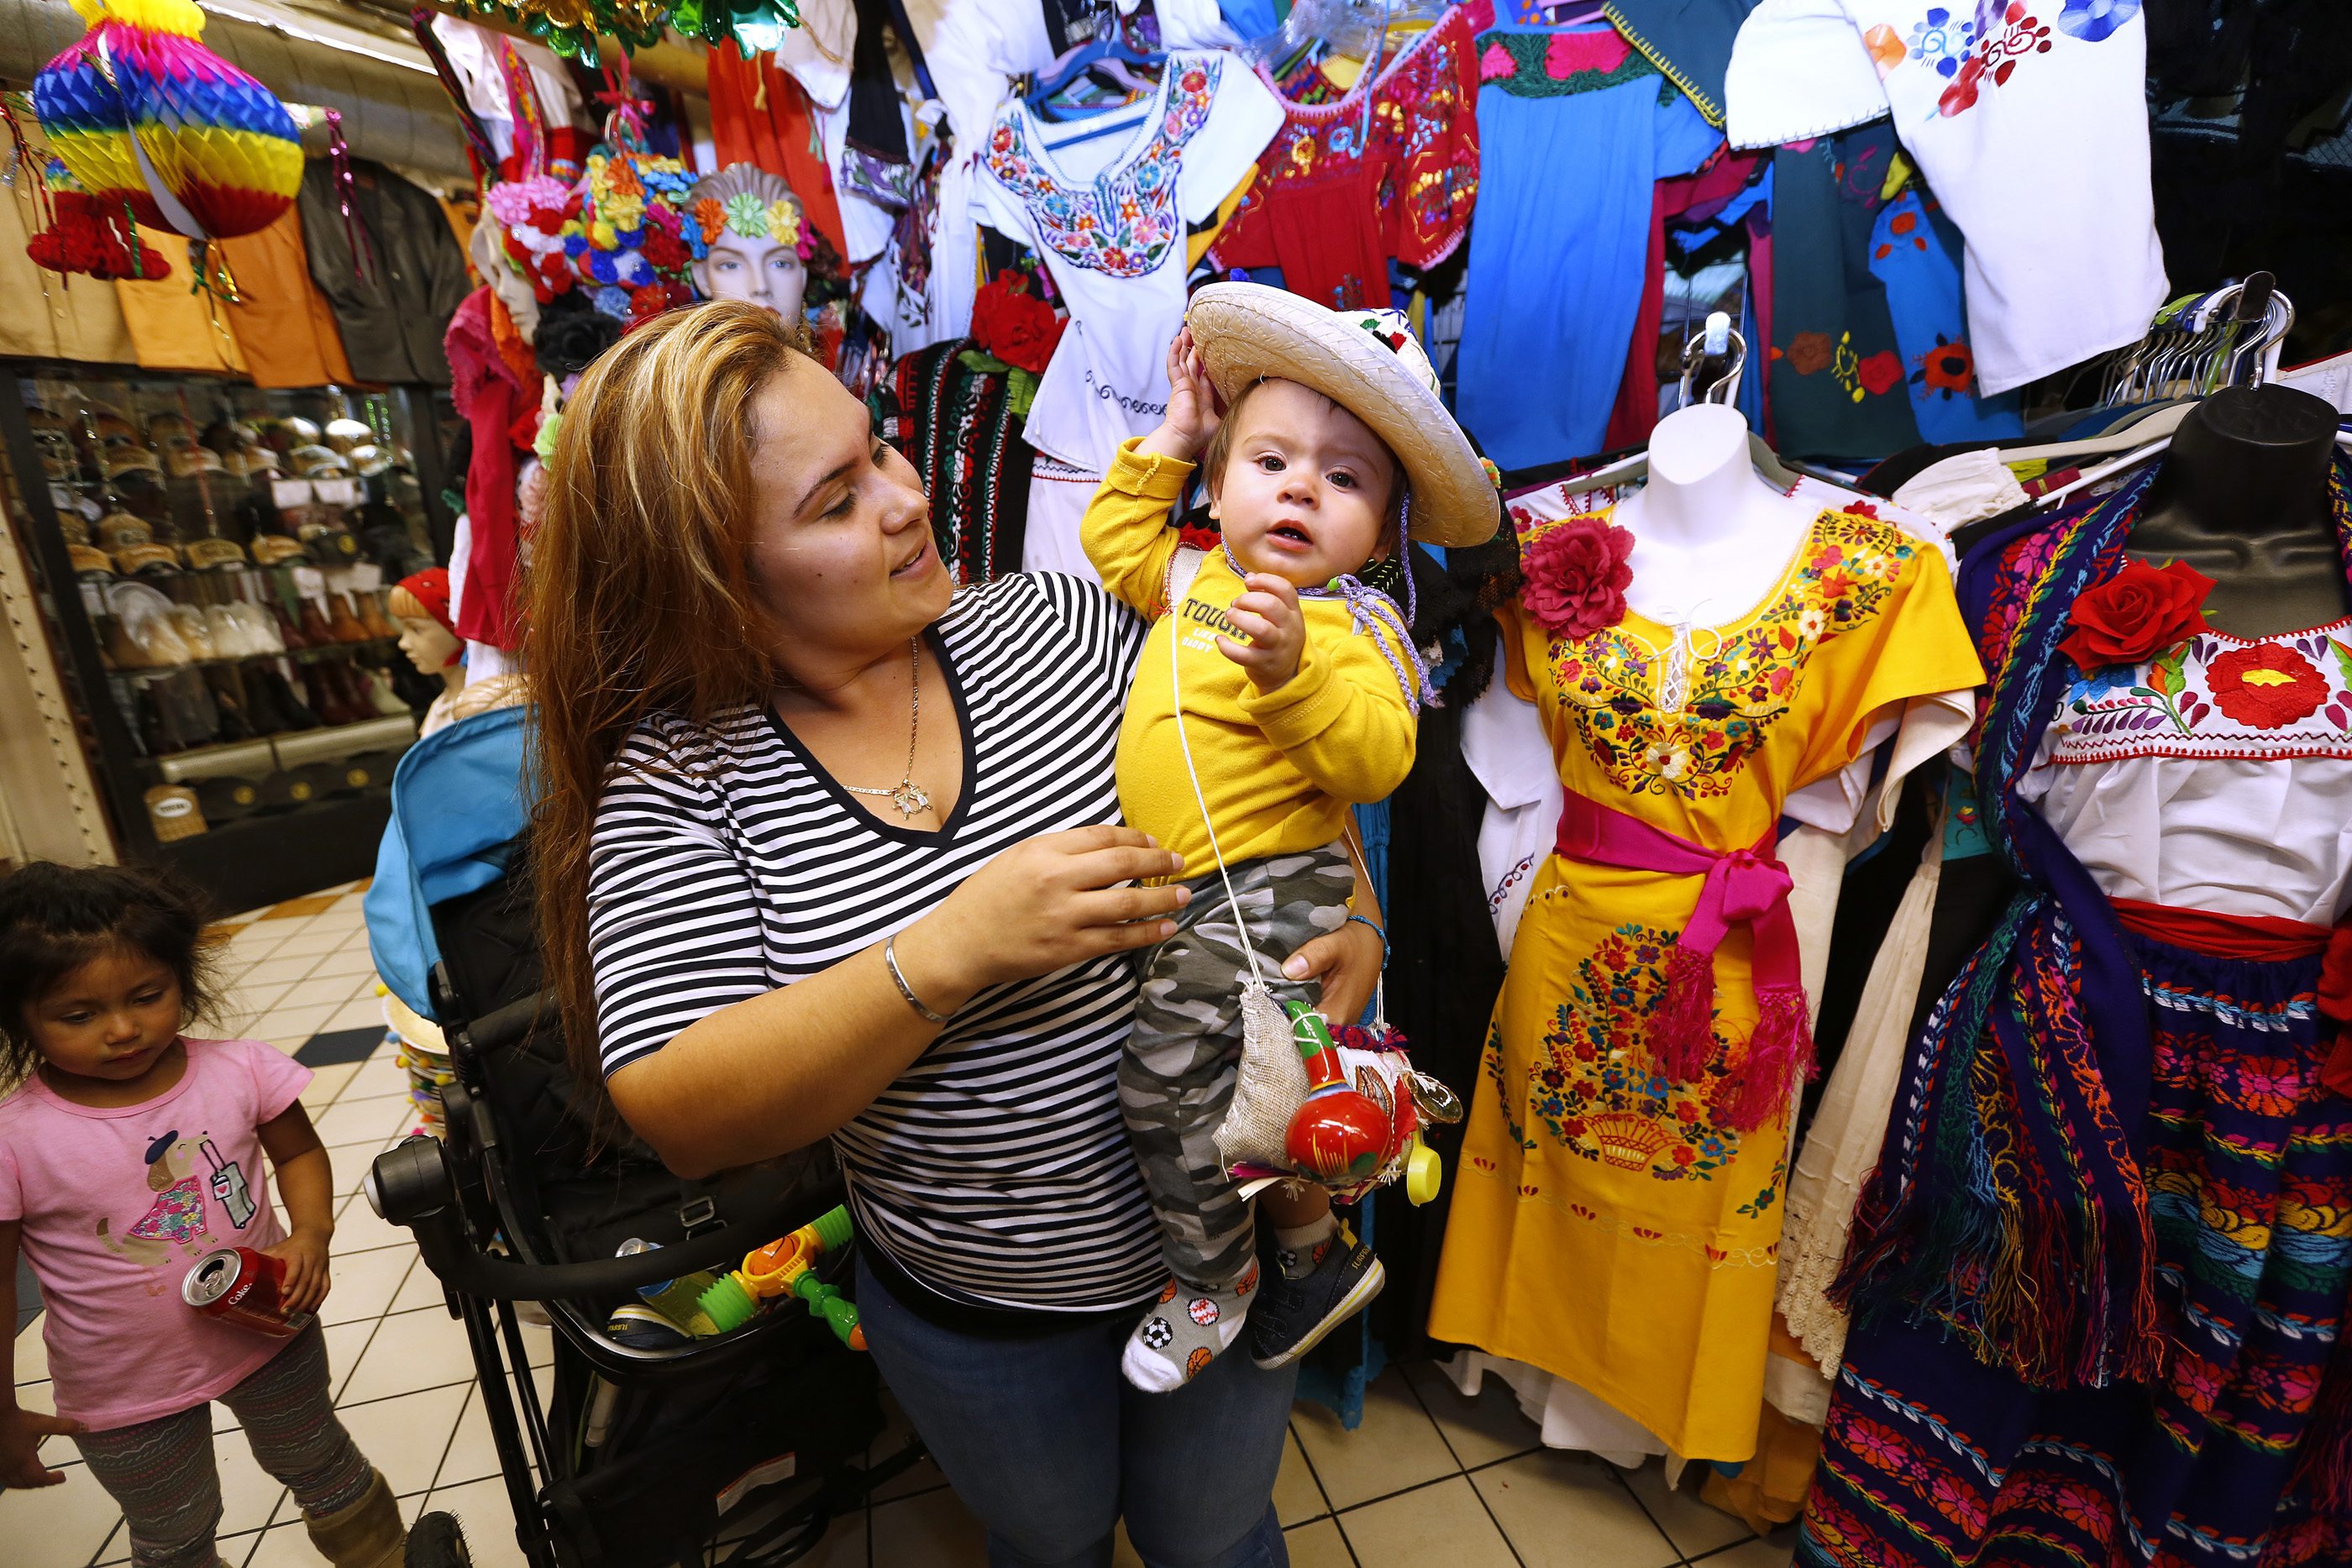 12/09/16 /LOS ANGELES/1 year-old Cesar Mateo with mom Guadalupe Erenas tries on an outfit while shopping at the popular Mercadito in East Los Angeles. Hundreds of religious Catholics will be celebrating the Virgin of Guadalupe. (Photo by Aurelia Ventura/La Opinion)